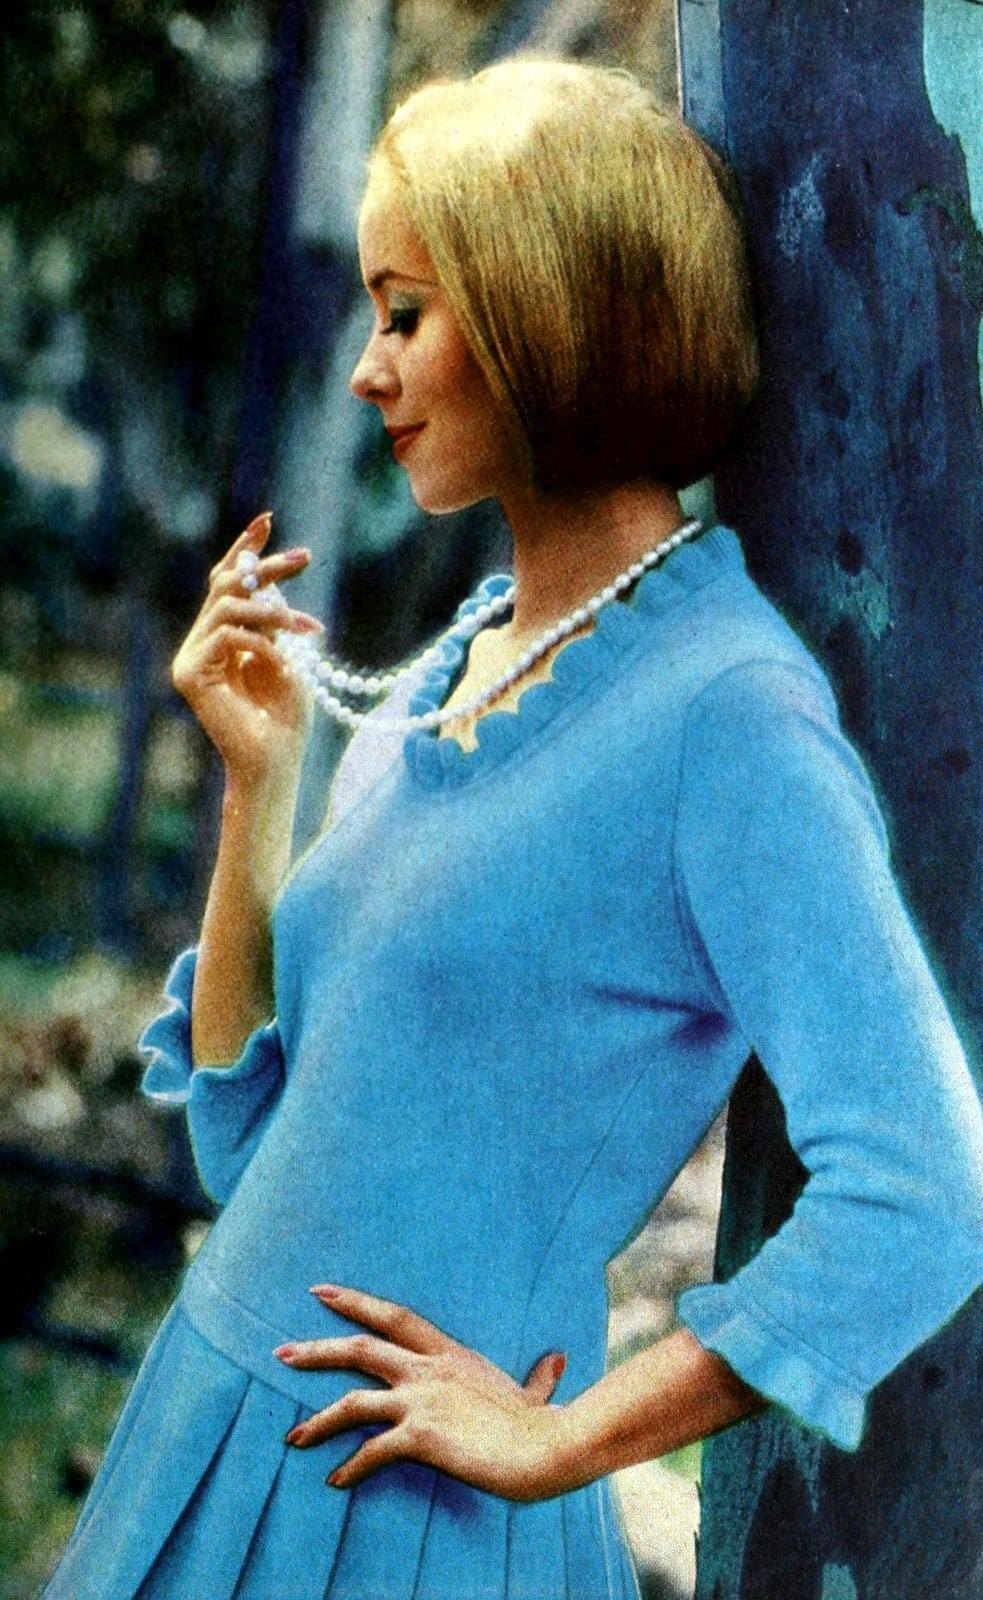 Vintage bright blue sweater with ruffled collar (1965)